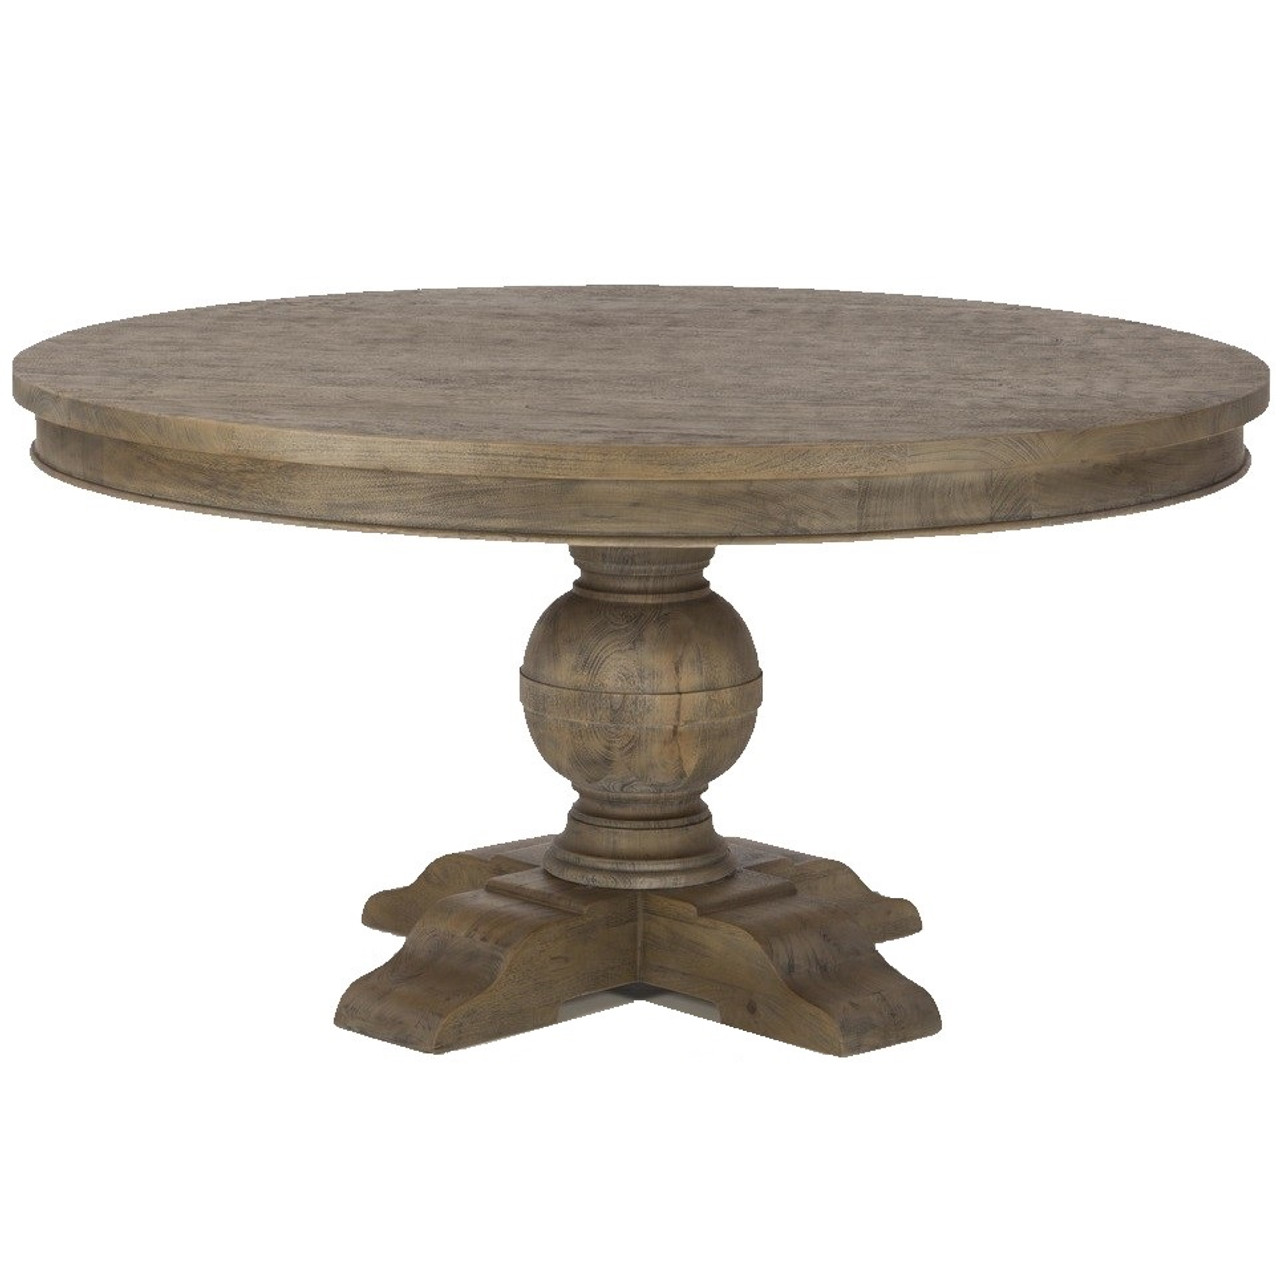 French Urn Solid Wood Pedestal Round Dining Table 72\